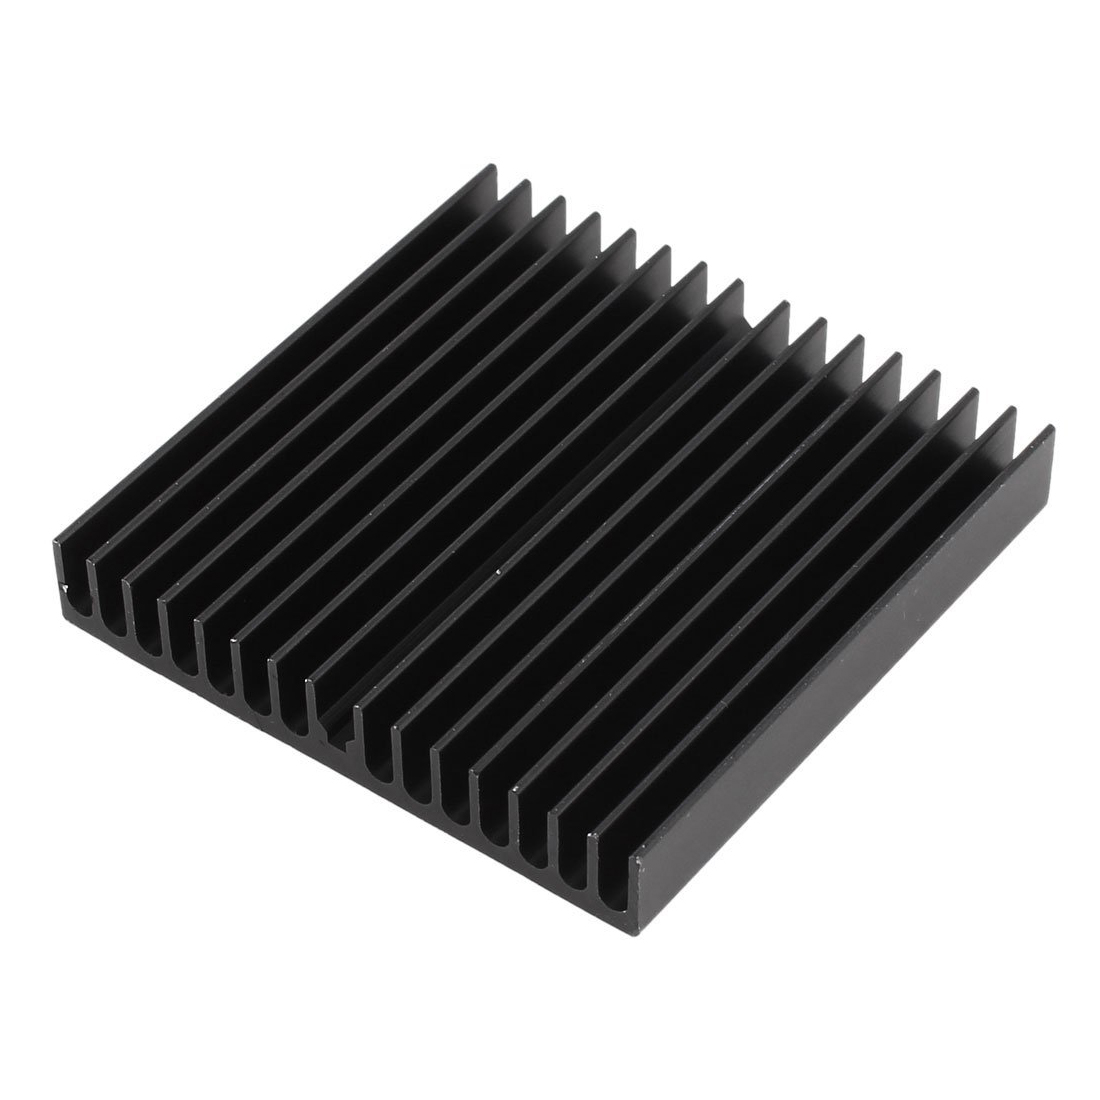 1 pcs Aluminum Radiator Heat Sink Heatsink 60mm x 60mm x 10mm Black 10 pcs black aluminum cooler radiator heat sink heatsink 20mm x 20mm x 10mm